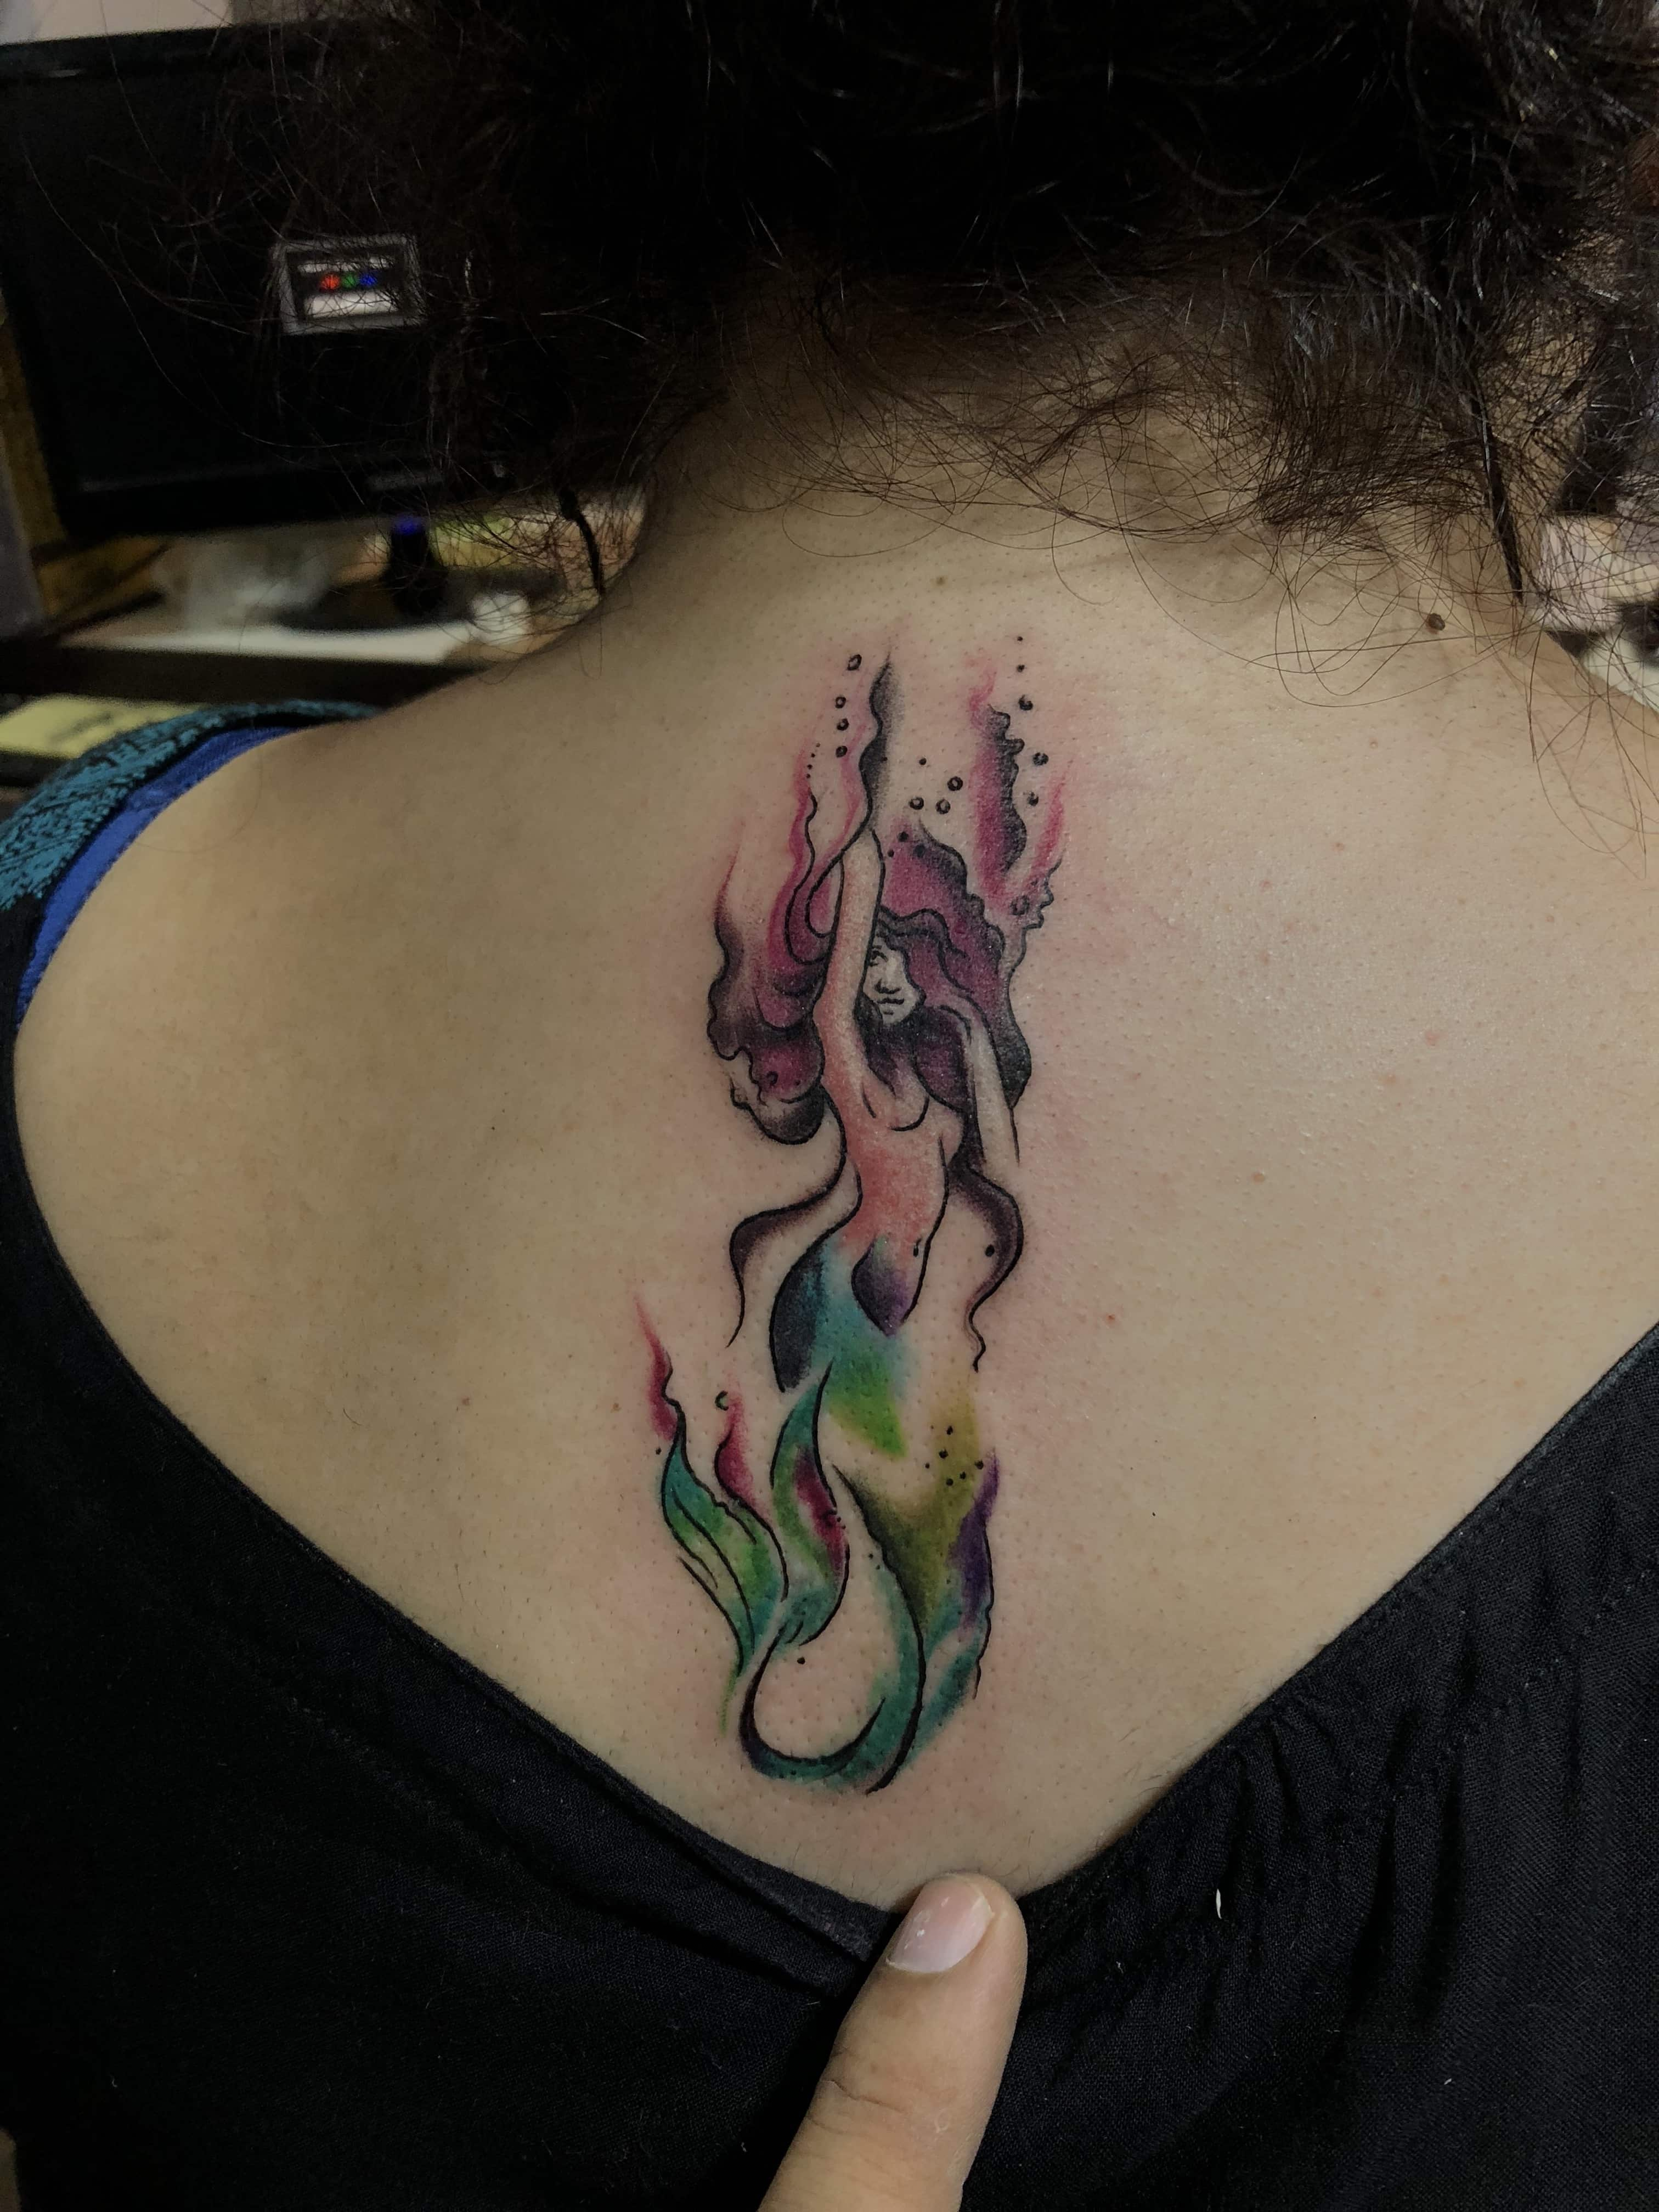 Best Mermaid tattoos | Stylish Mermaid Tattoo Designs